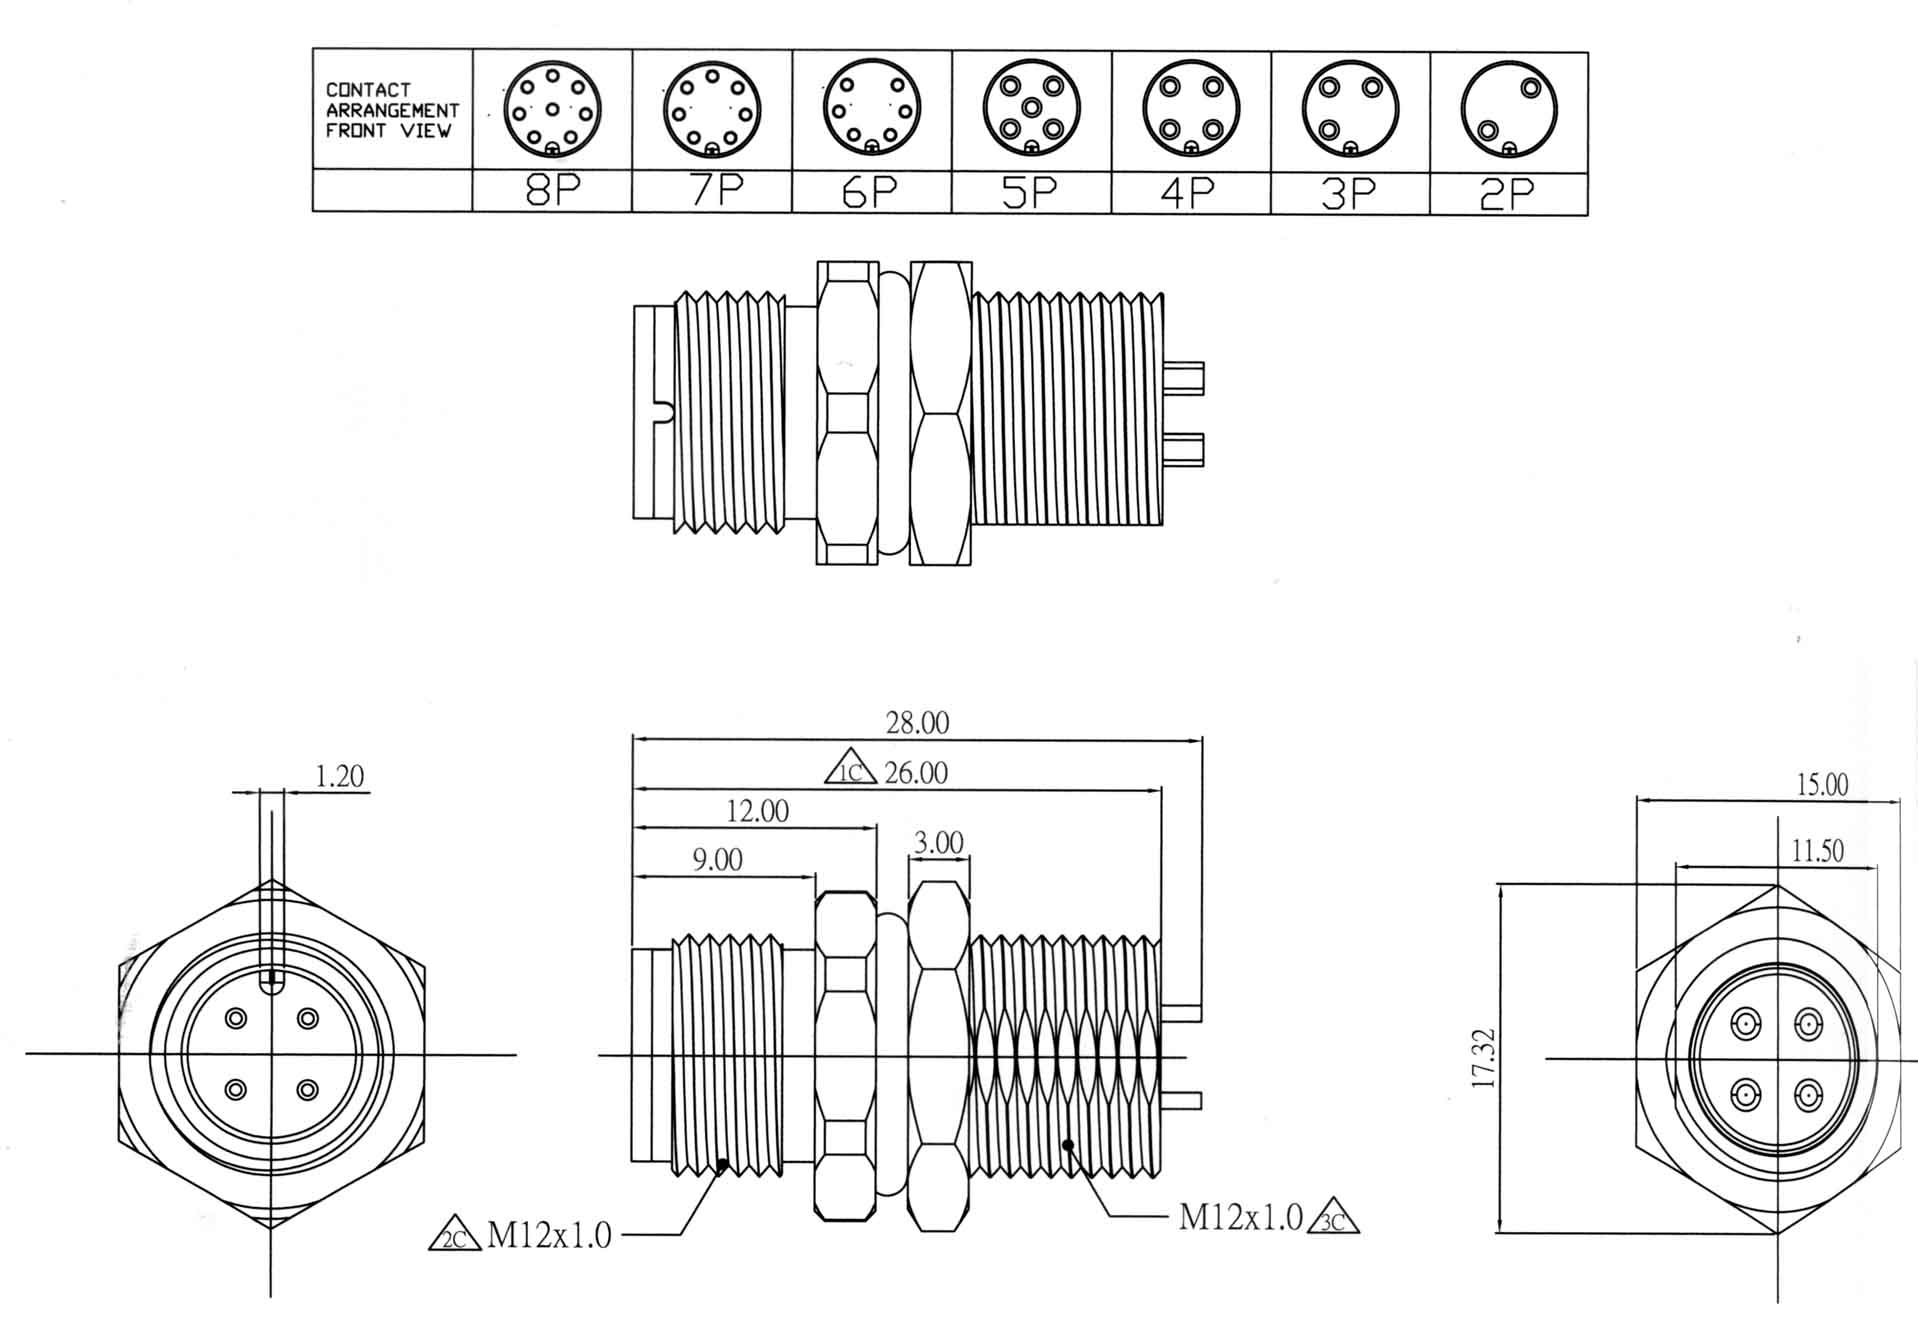 M12 Electrical Connector